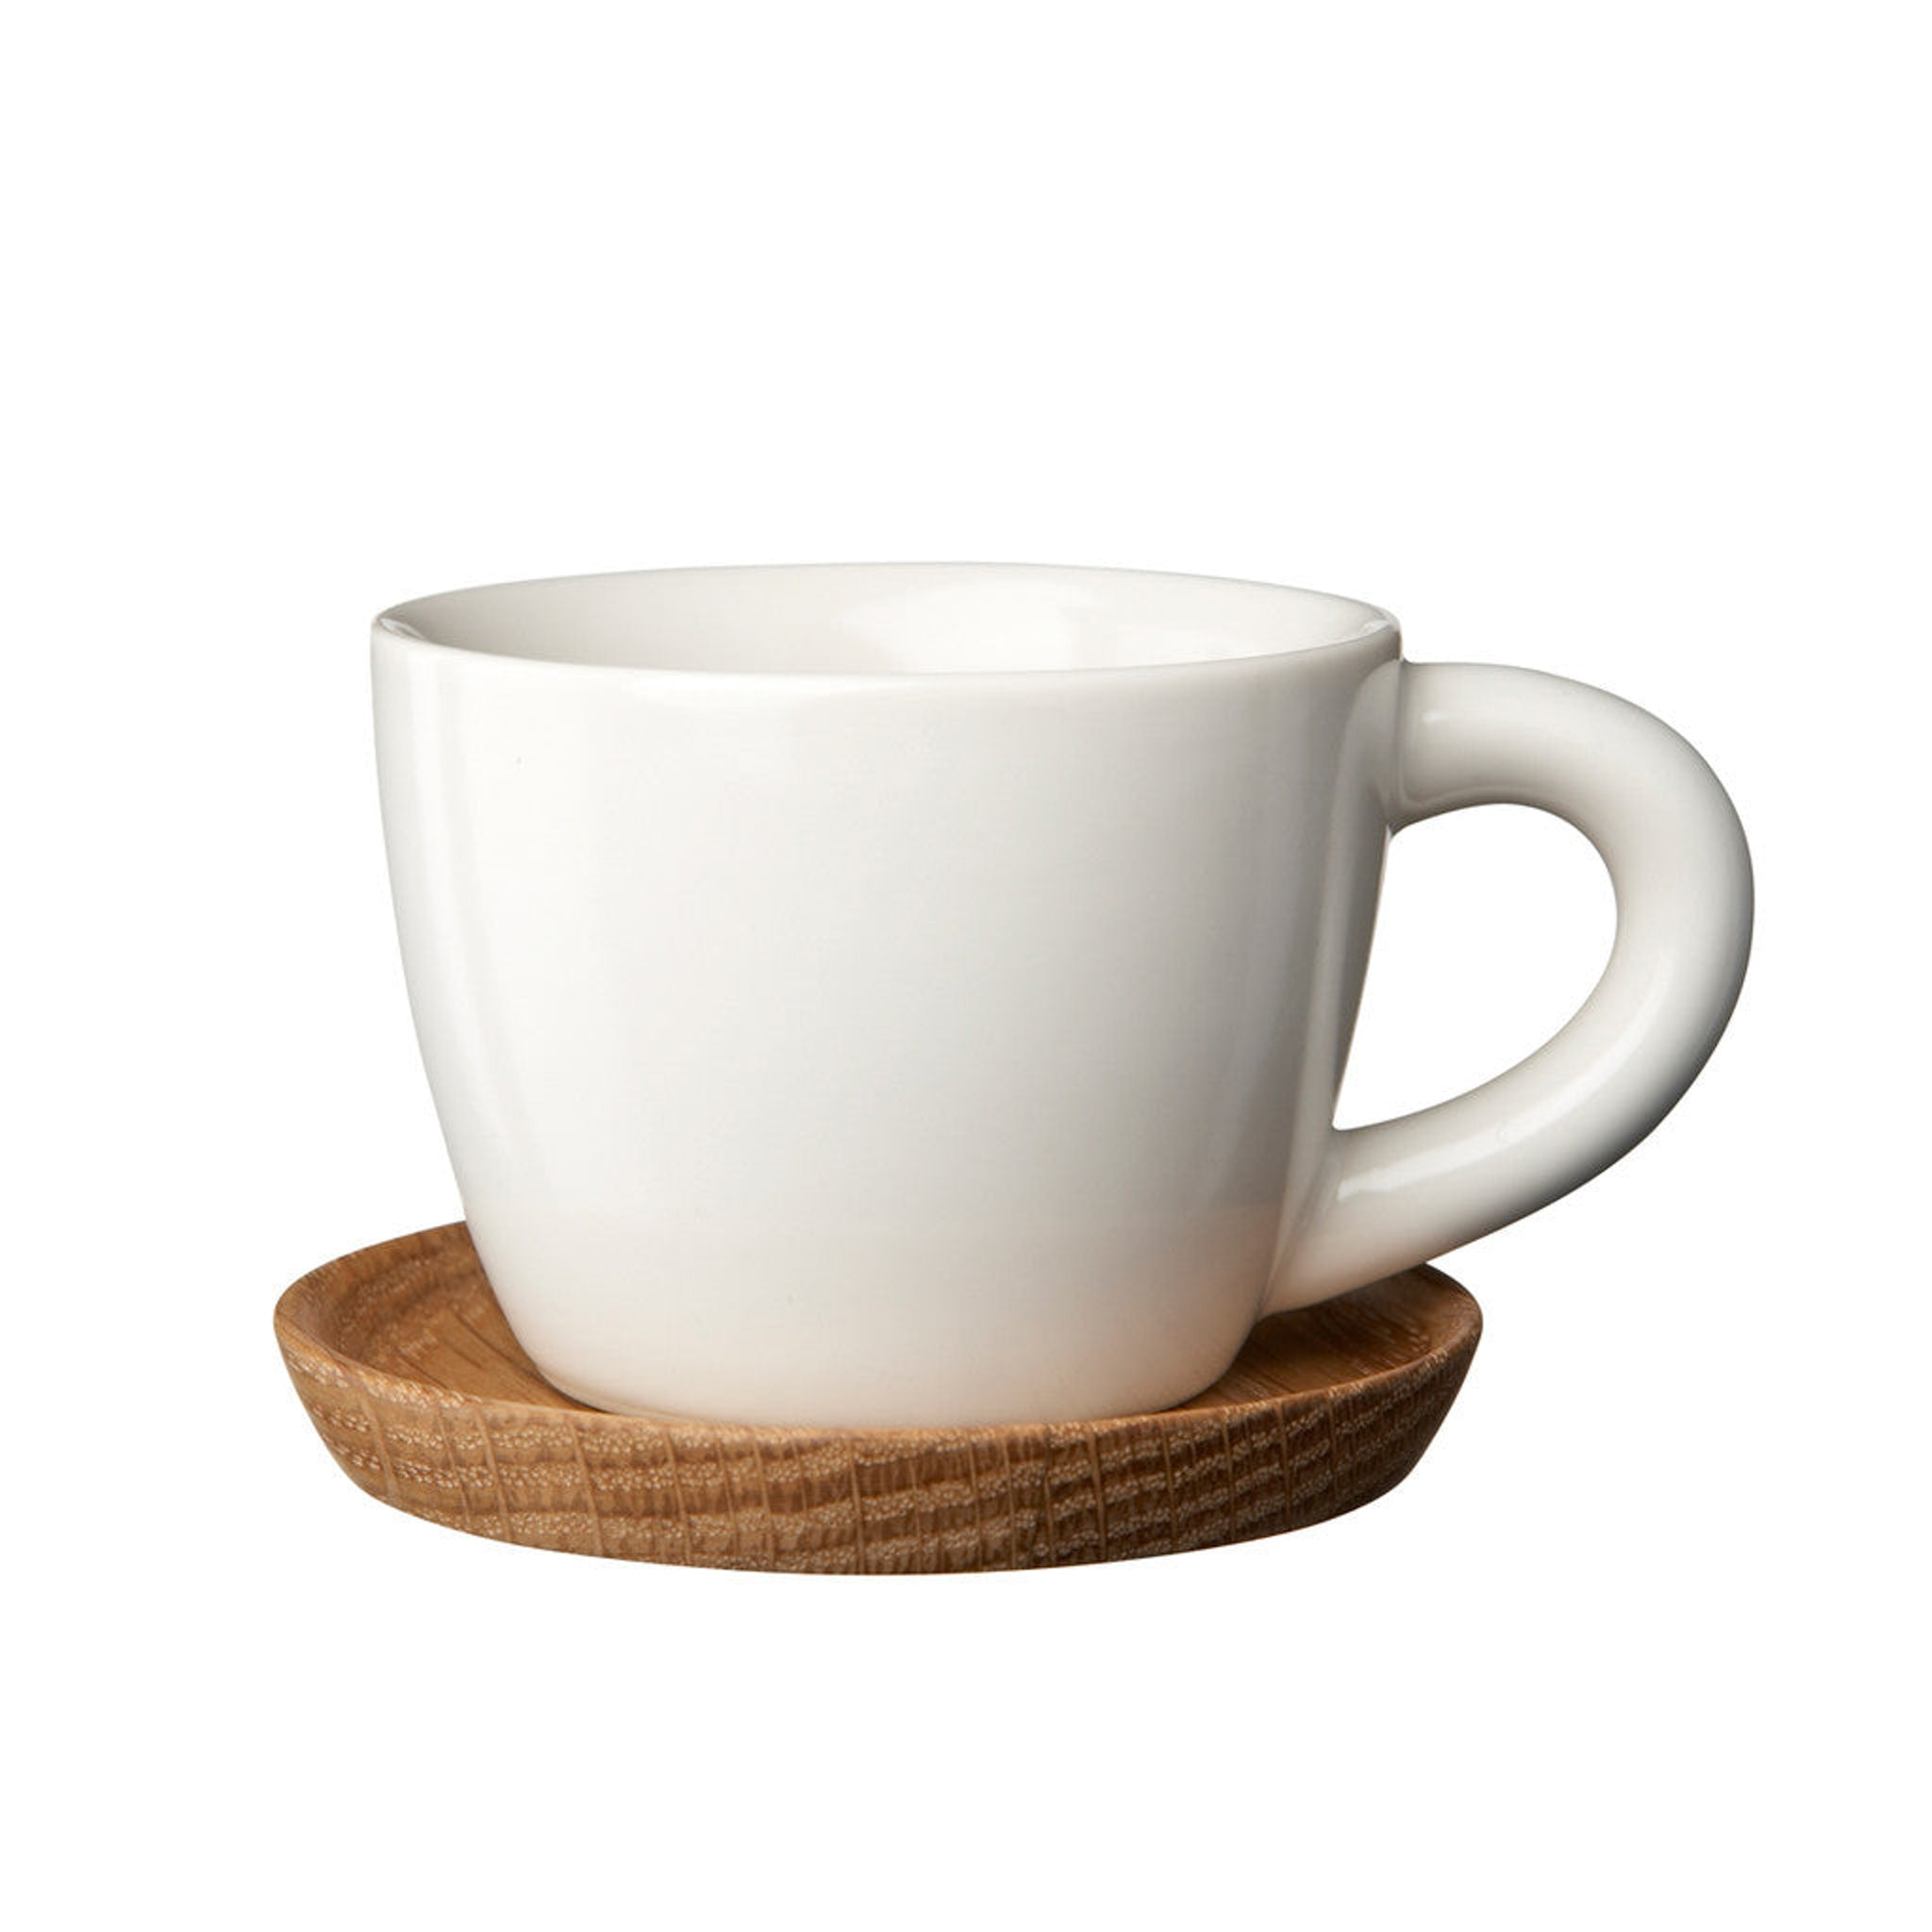 Hoganas Expresso cup with wooden saucer by Front Design